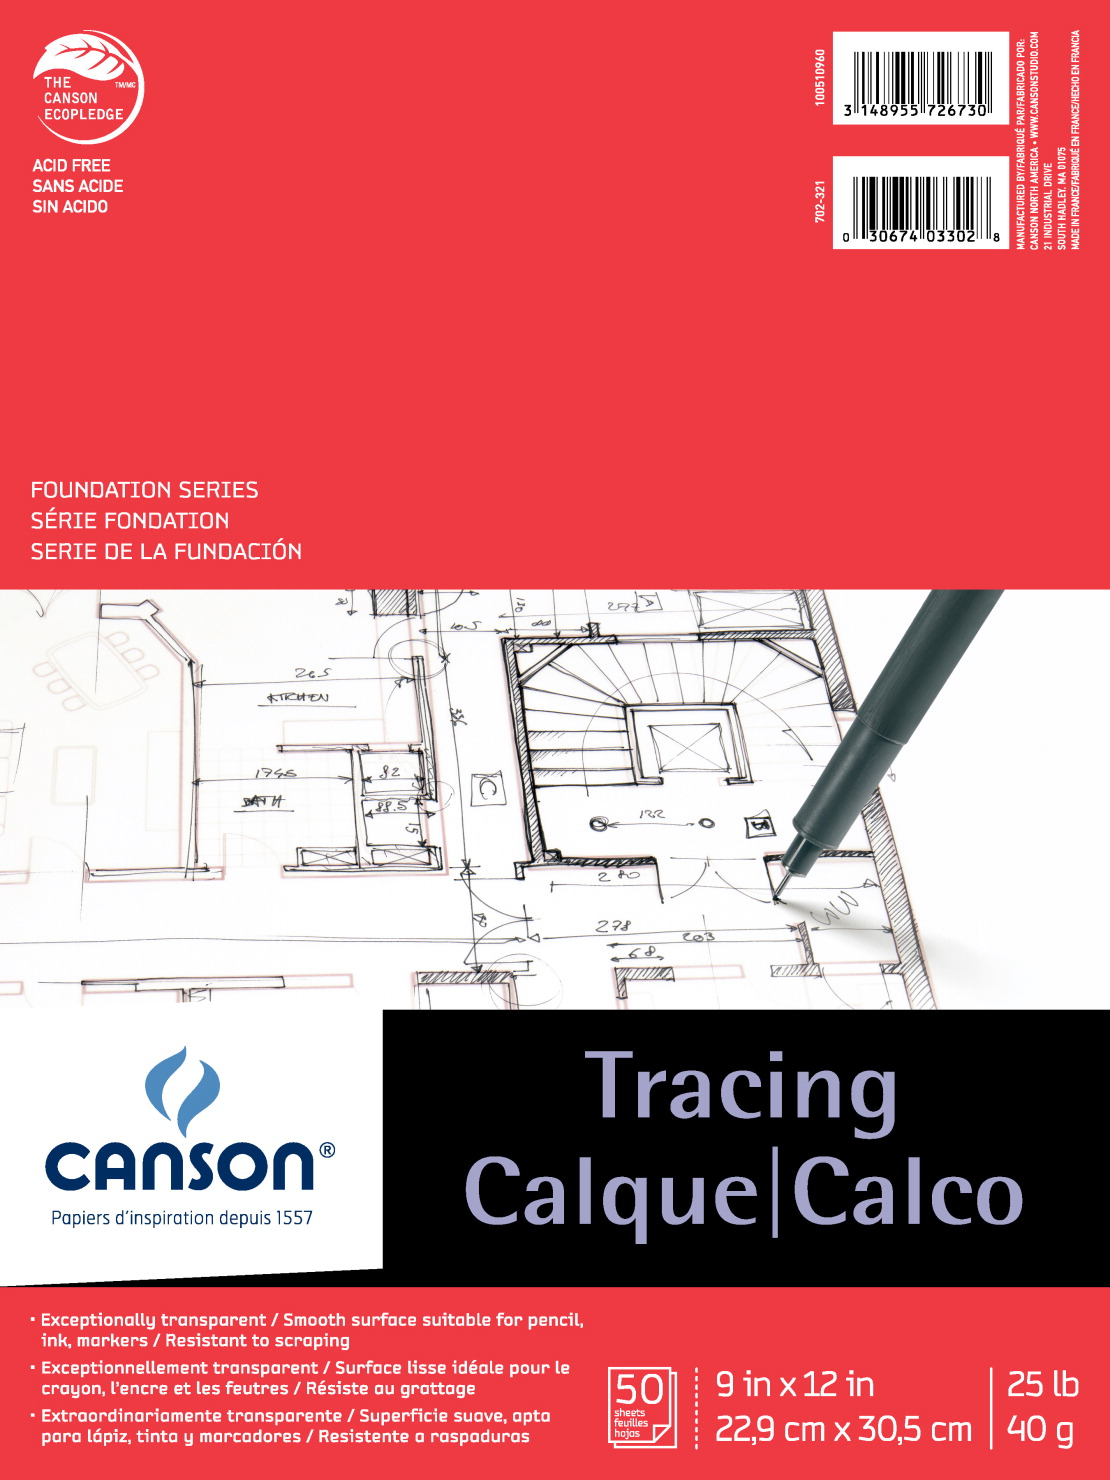 25 lb 50 Sheets 9 x 12 Inches Canson Foundation Tracing Pad